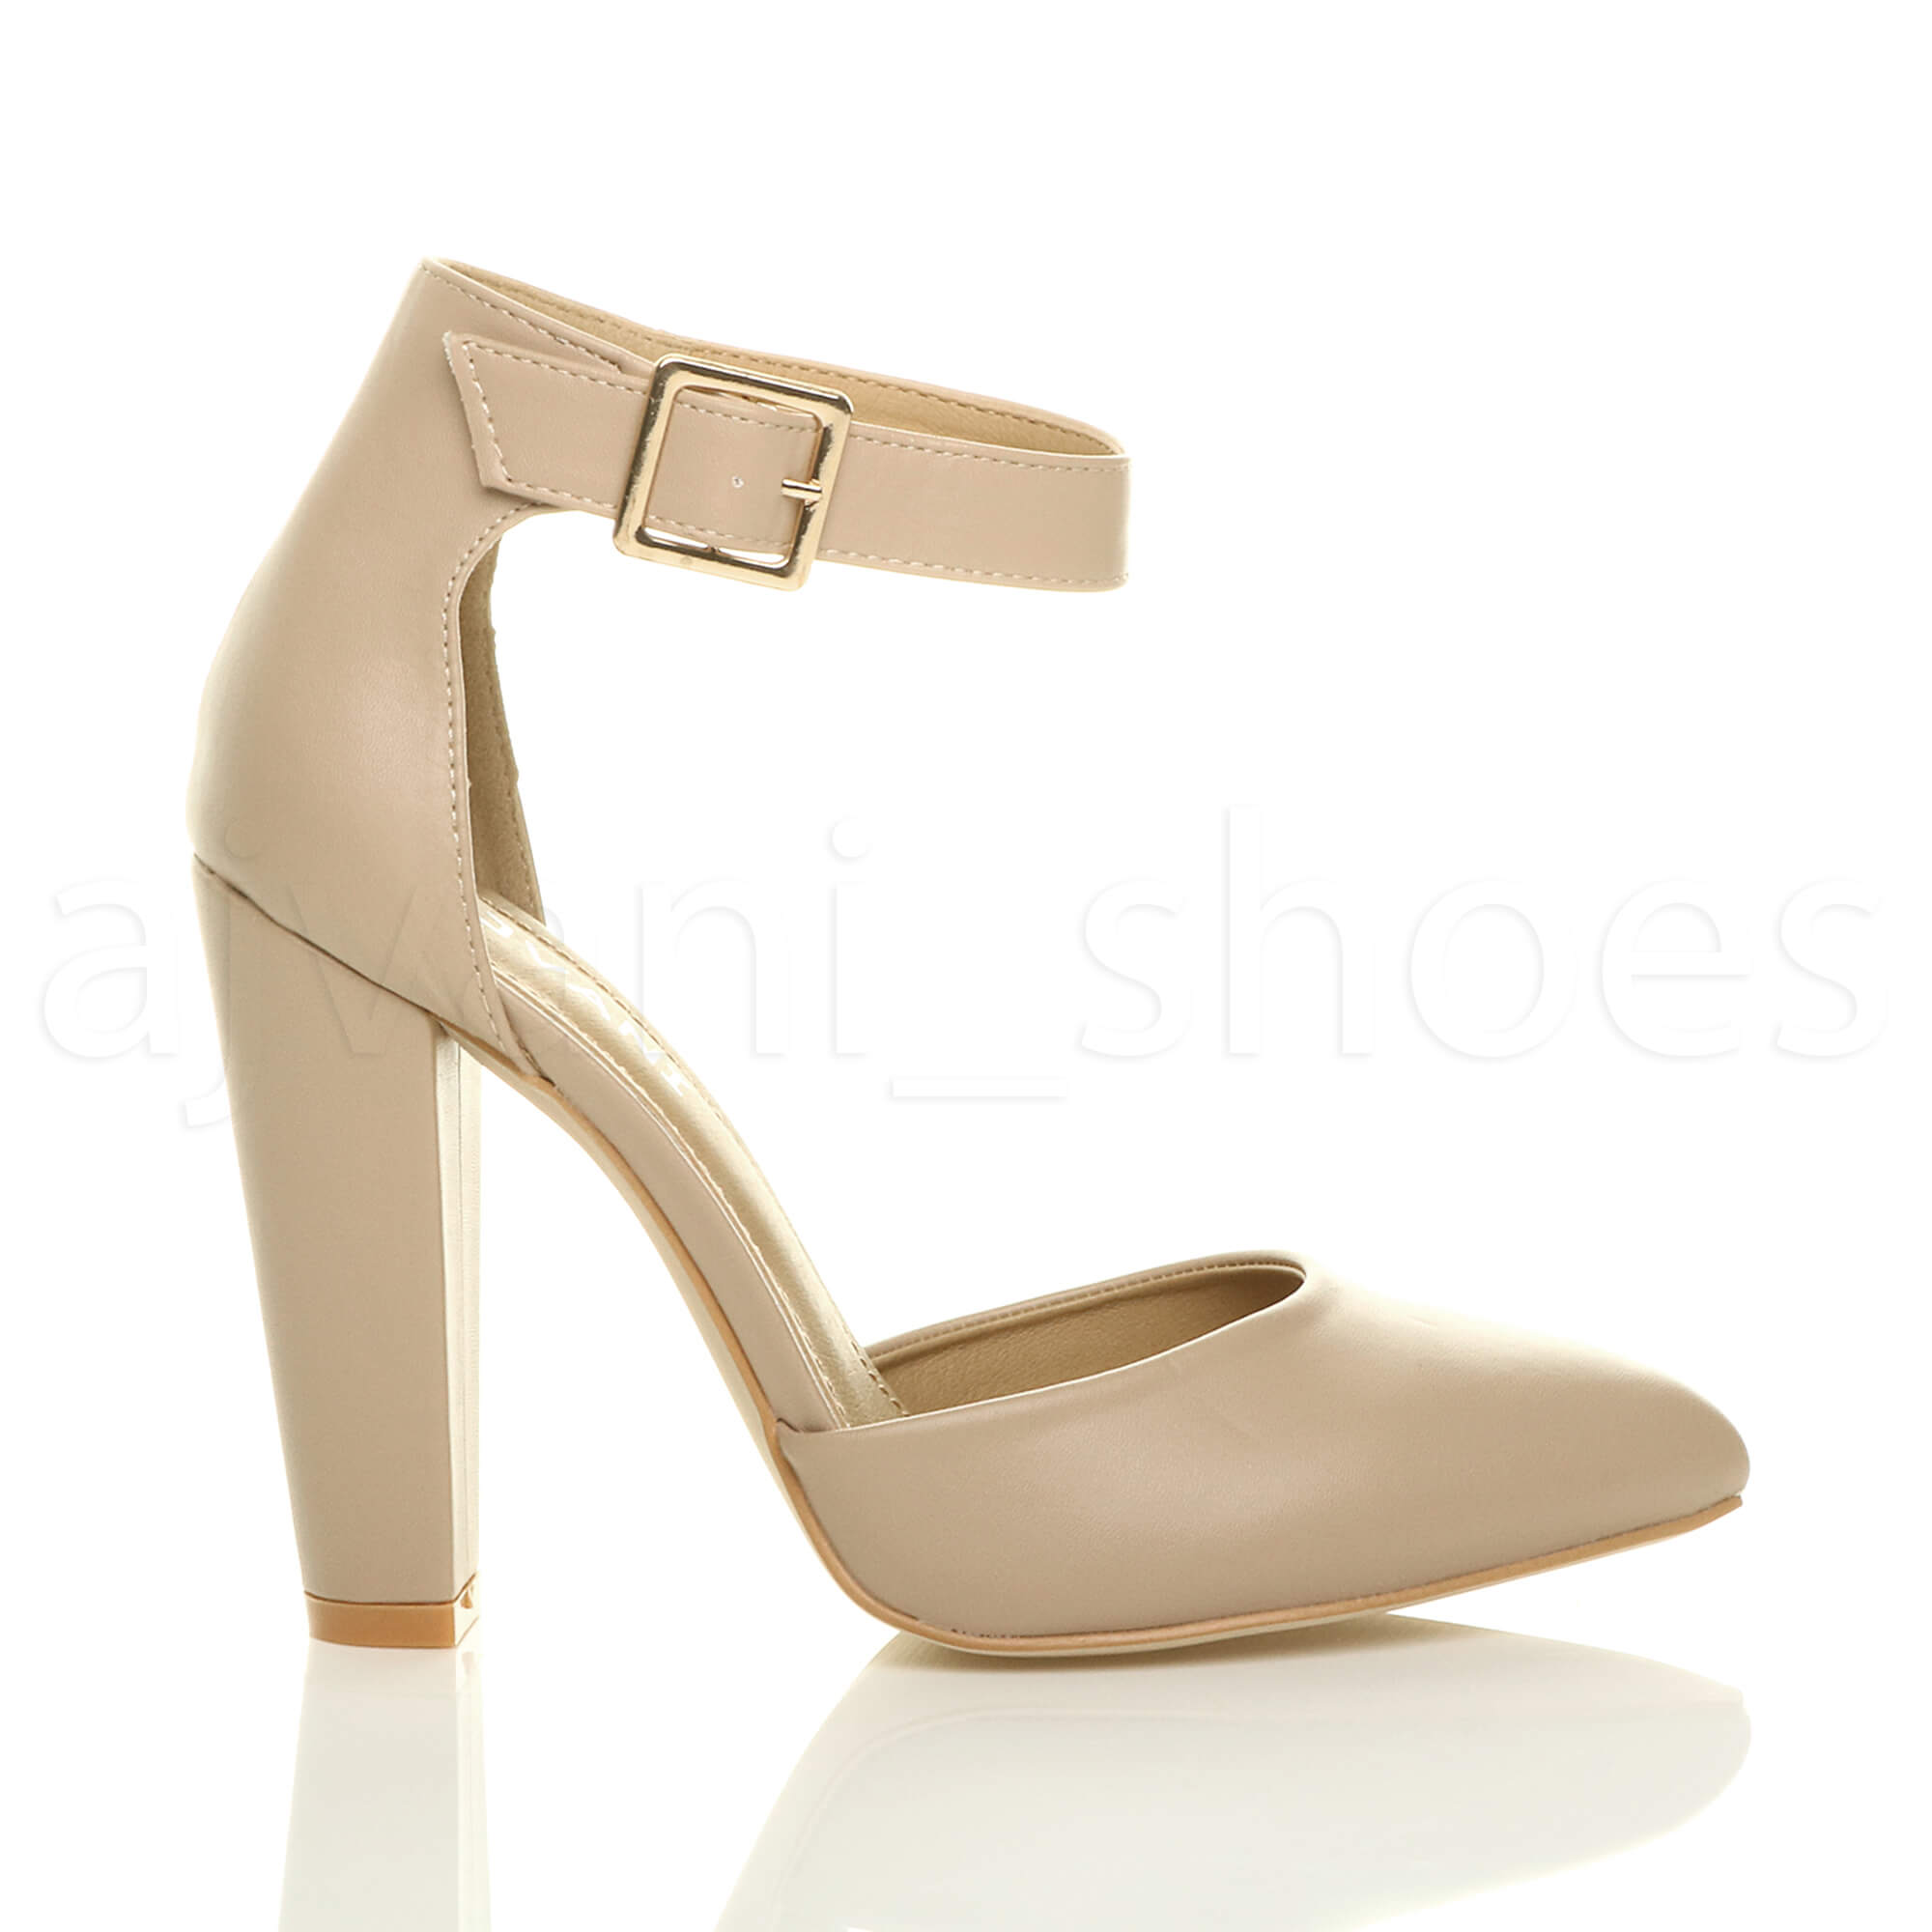 WOMENS-LADIES-HIGH-BLOCK-HEEL-ANKLE-STRAP-BUCKLE-POINTED-COURT-SHOES-SIZE thumbnail 80